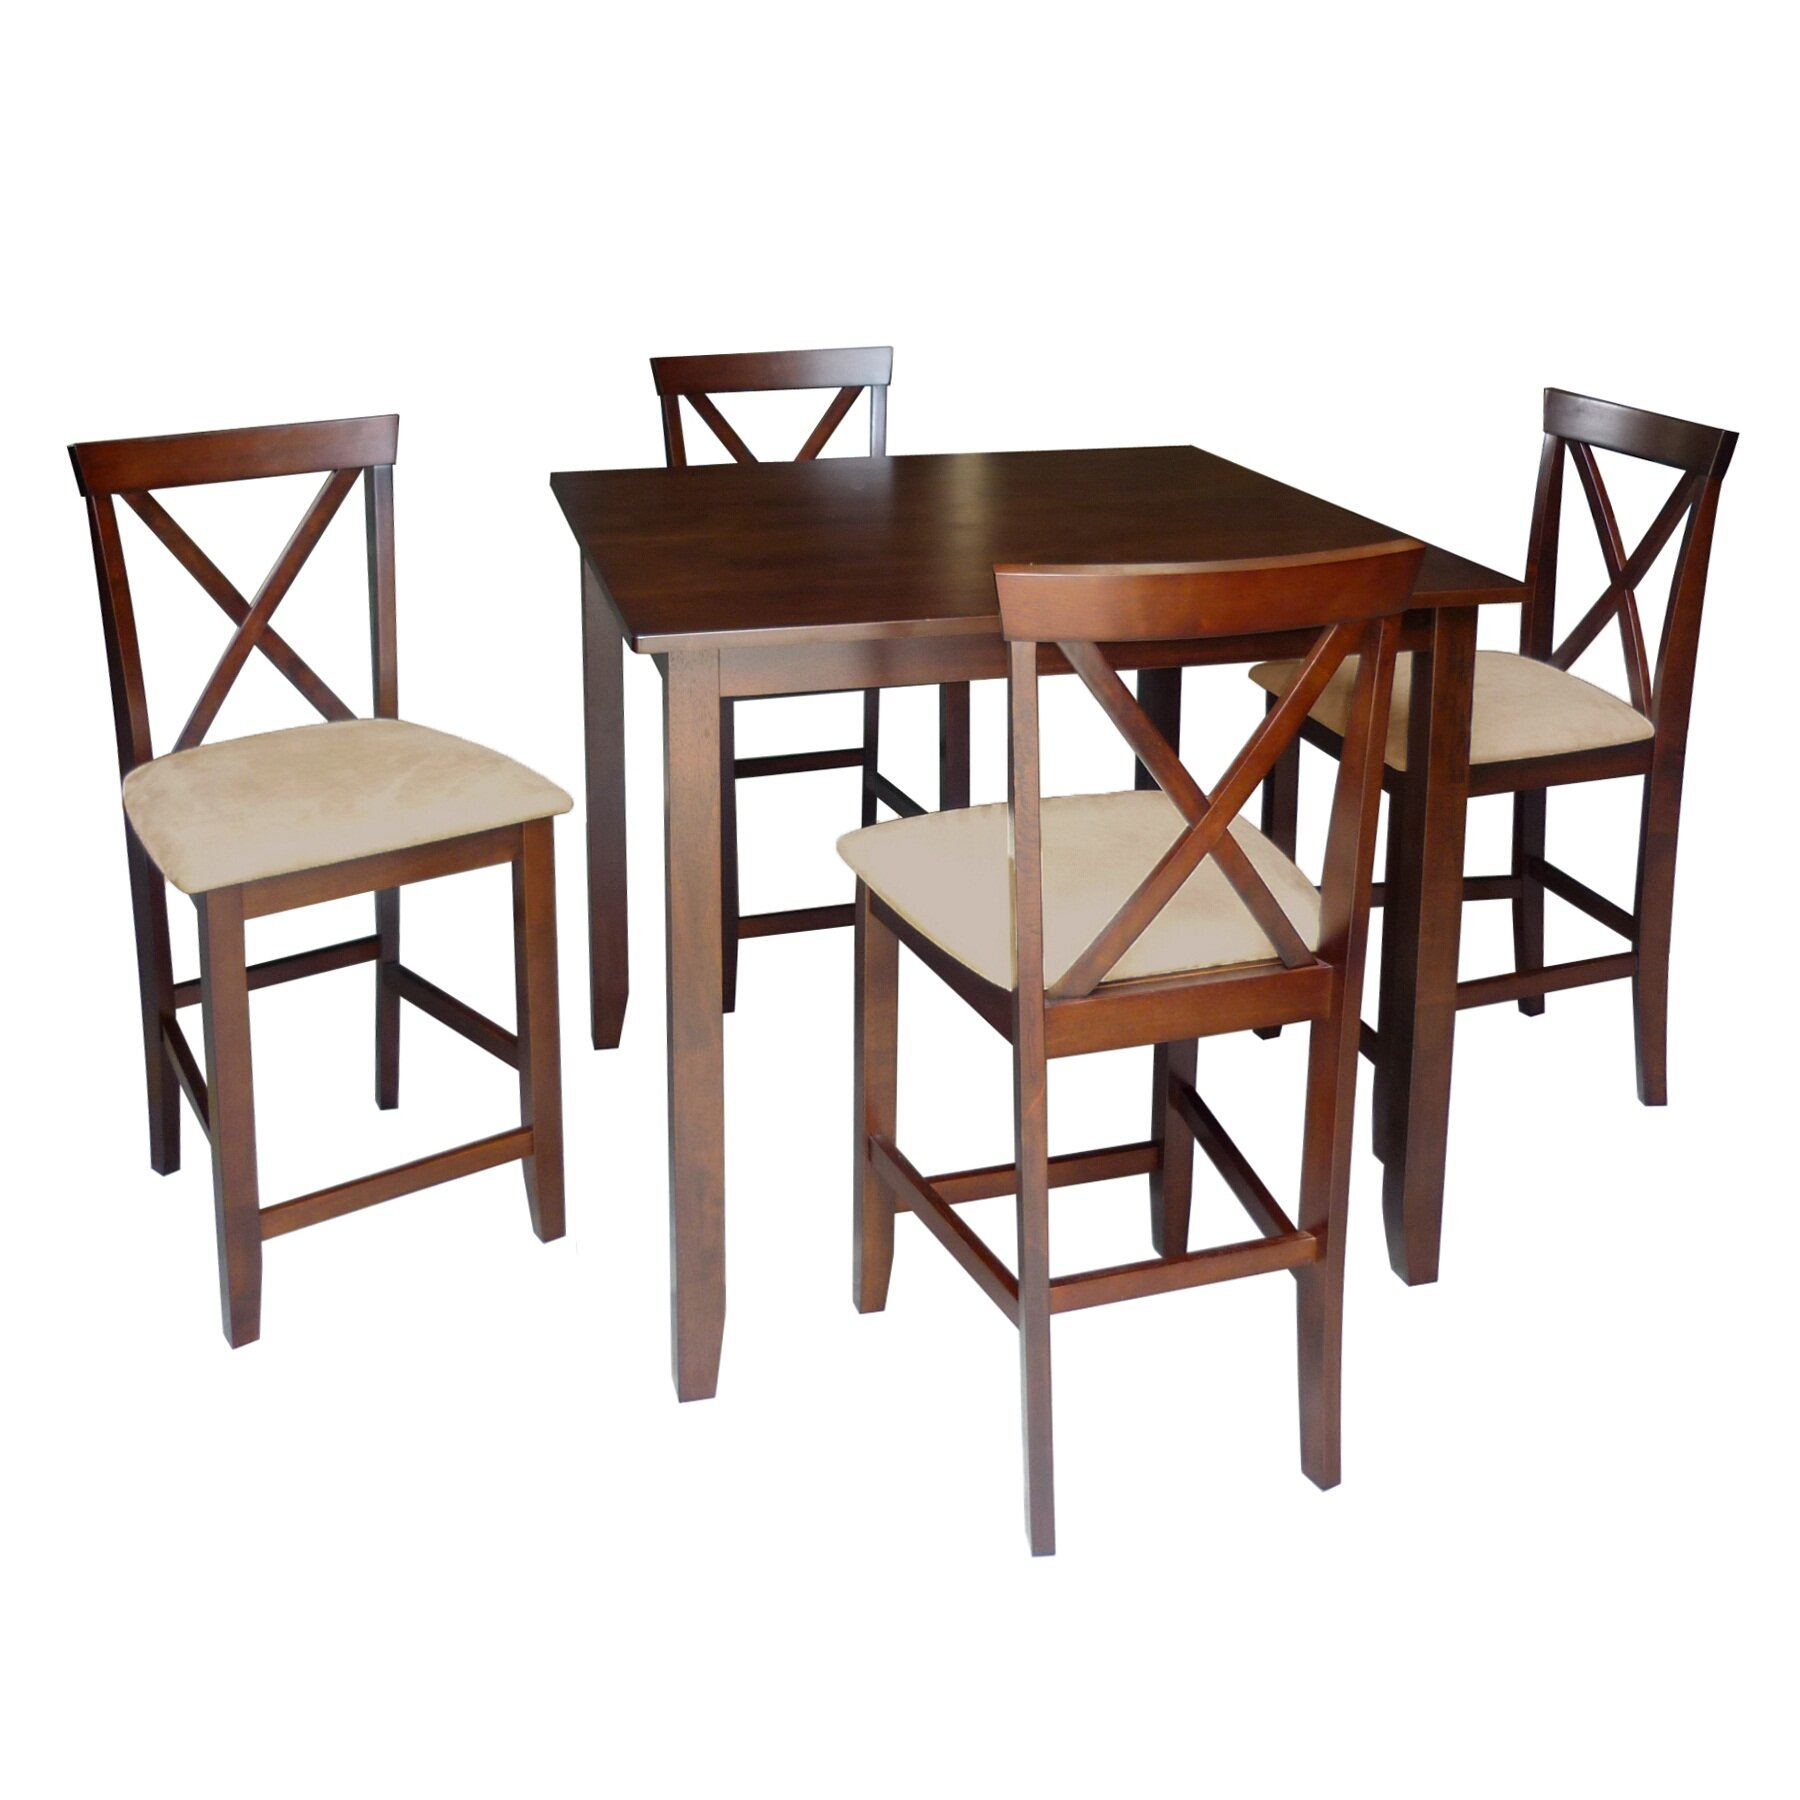 Counter Height Dining Sets 5 Piece : ... Studio Natalie 5 Piece Counter Height Dining Set & Reviews Wayfair